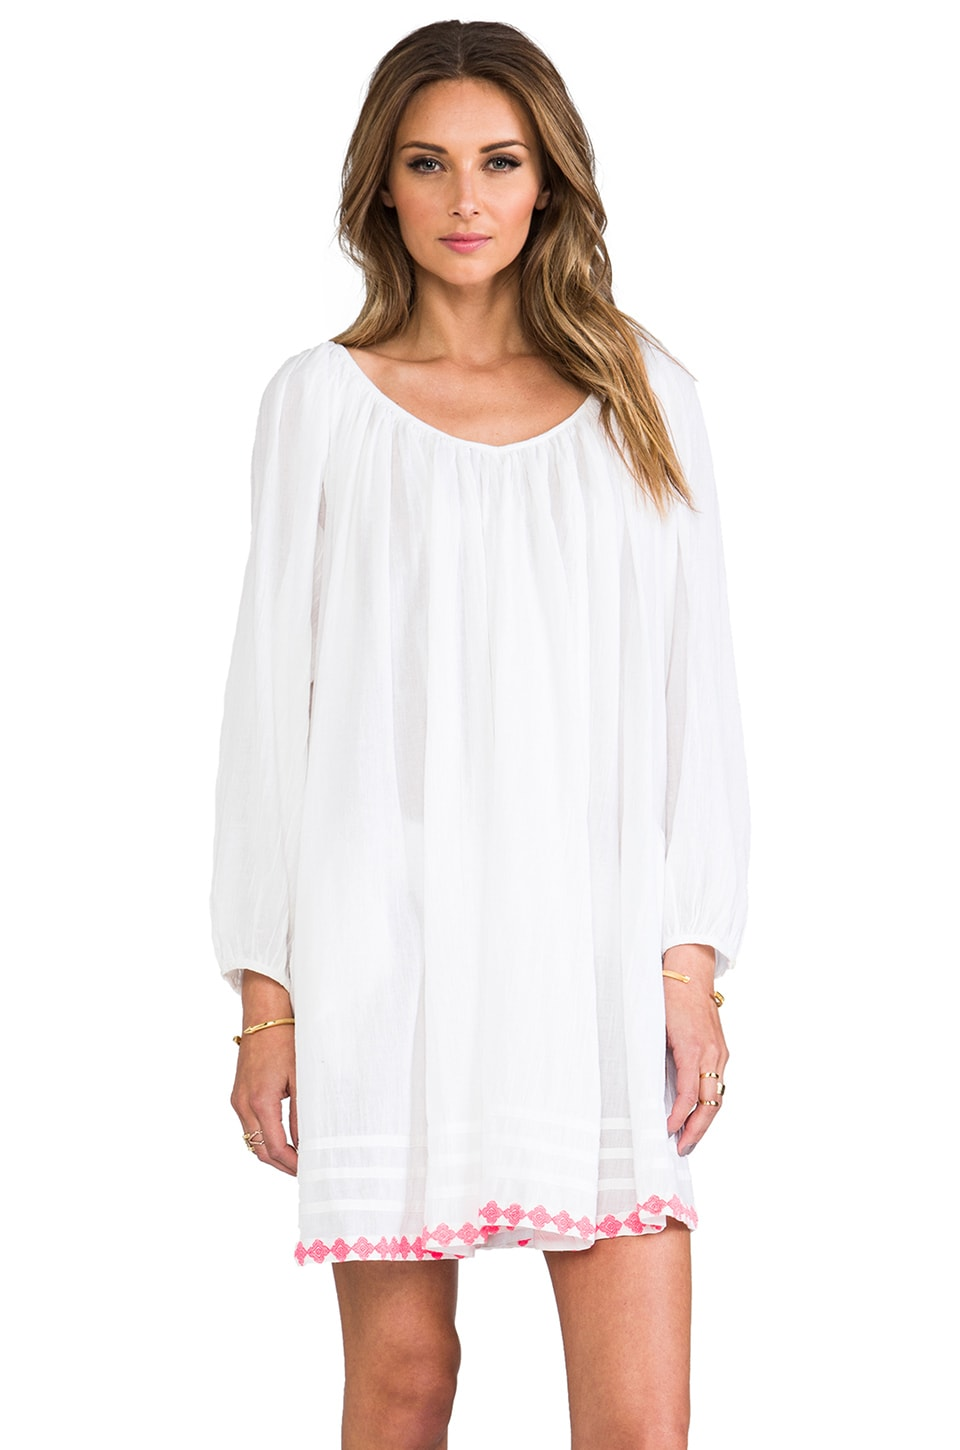 Basta Surf Capri Mini Dress in White